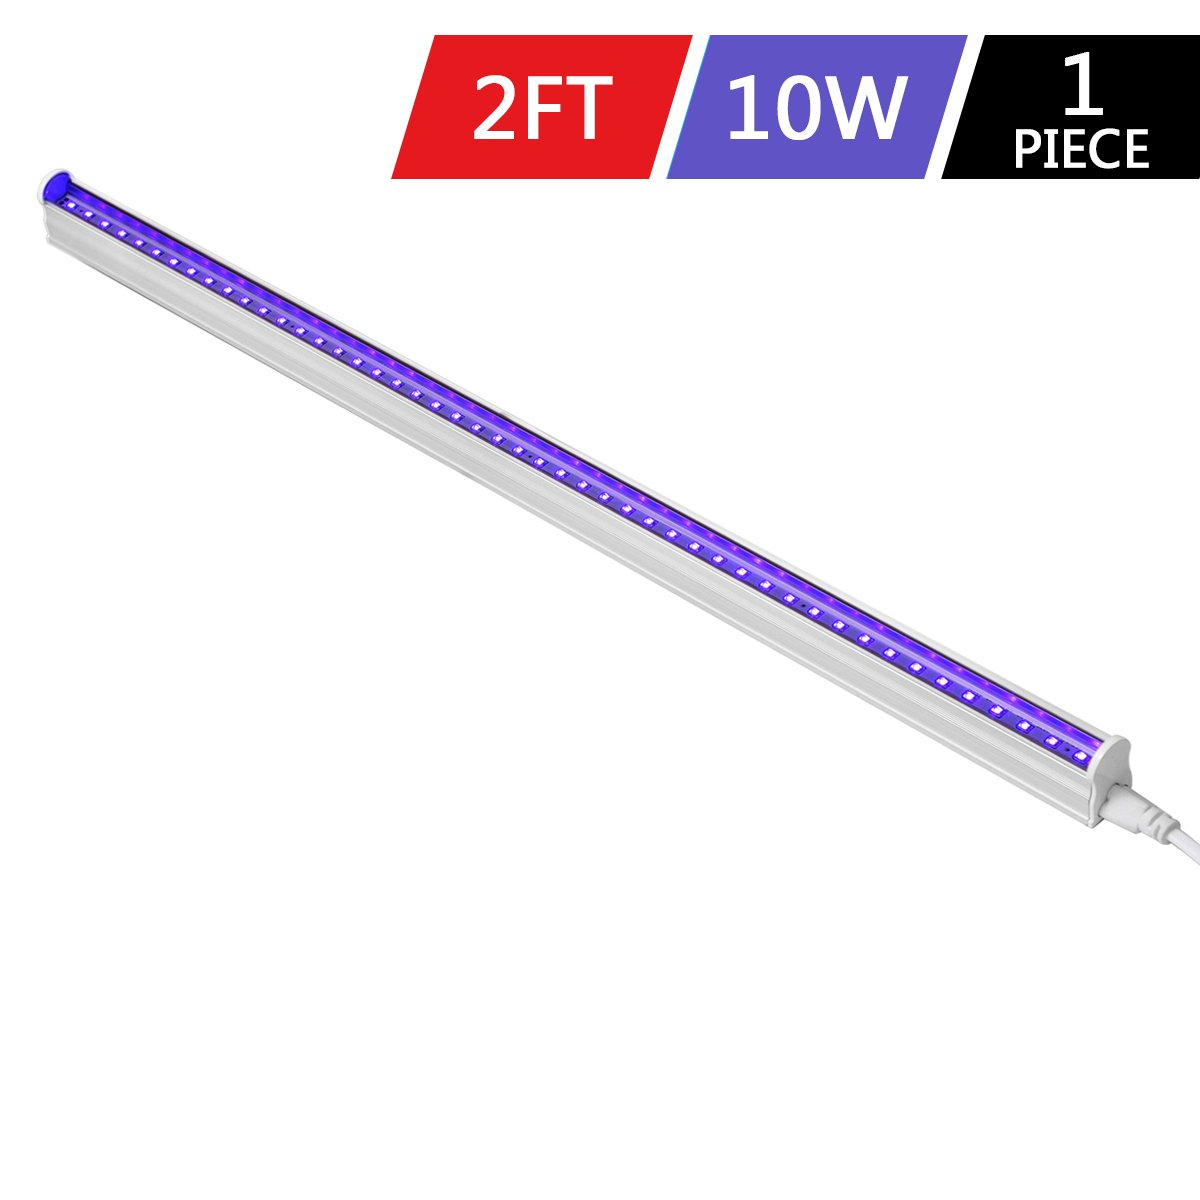 Byingo UV Black Light Fixtures 2ft 10W LED T5 Integrated Single Fixture Extendable Tube Bulb Blacklight for DJ Stage Dorm Party Club, Corded Included Built-in ON/OFF Switch Plug and Play, 1-Pack